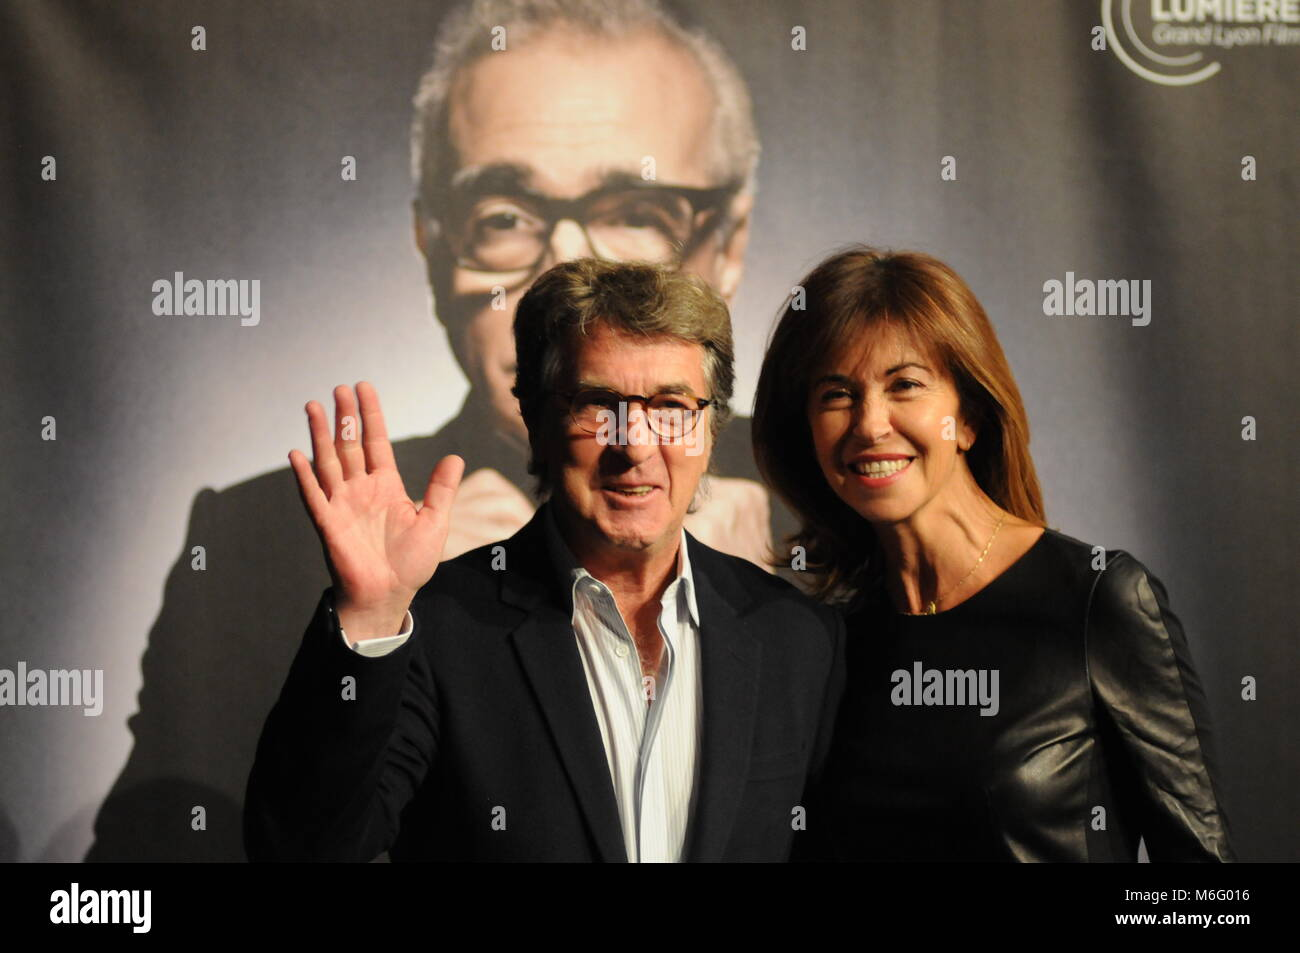 Celebrities attend Opening night of Lumiere Film Festival, Lyon, France - Stock Image